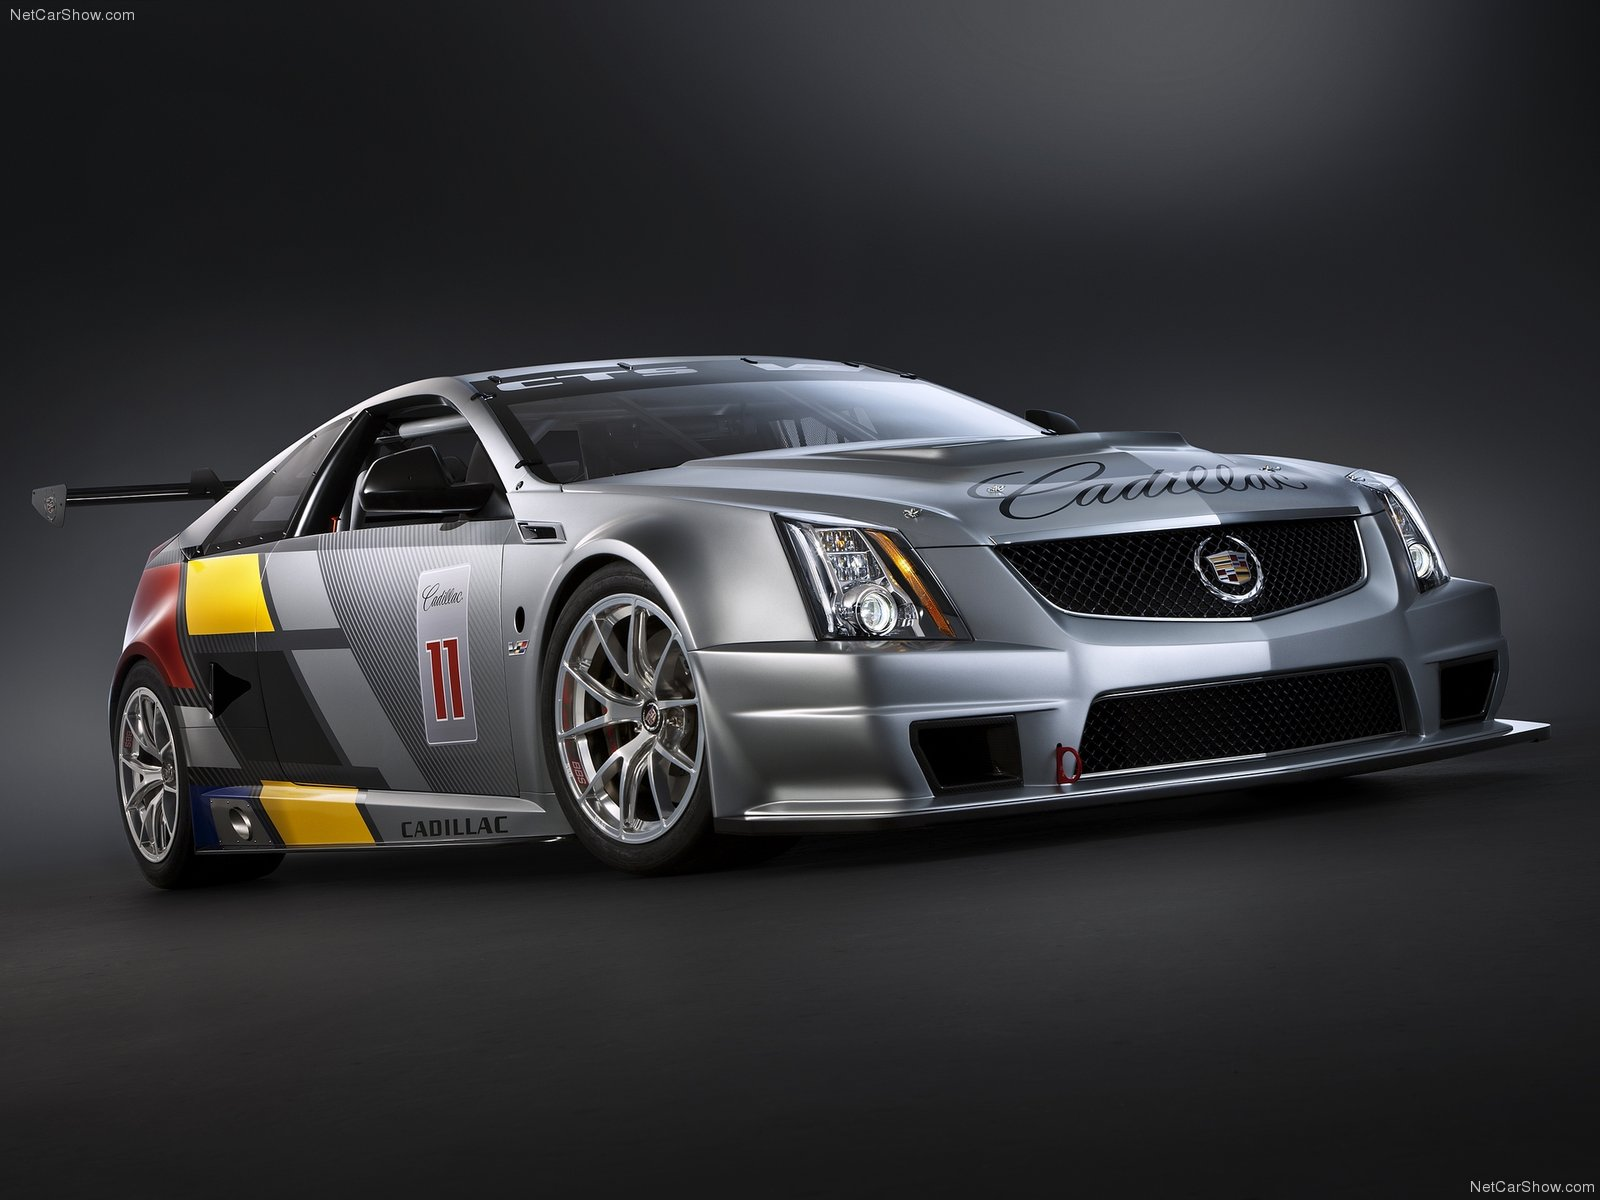 Cadillac CTS-V Coupe Race Car photo 77659